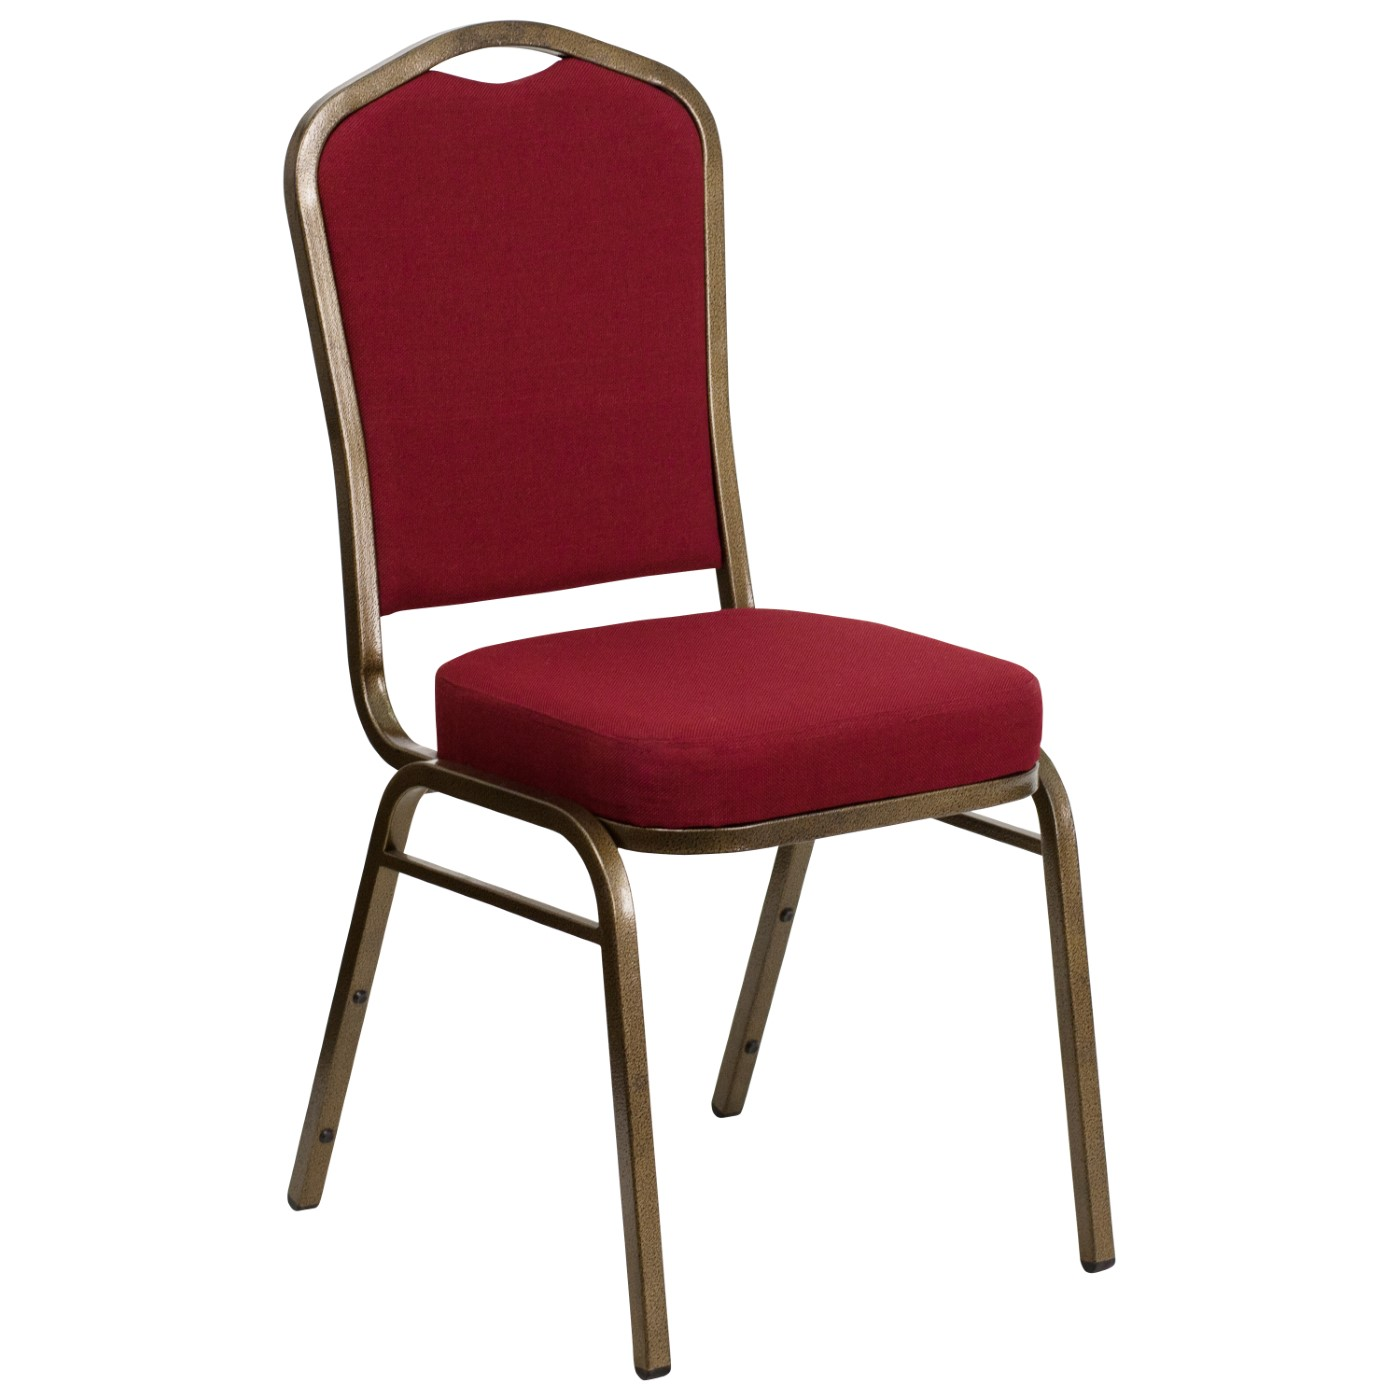 TOUGH ENOUGH Series Crown Back Stacking Banquet Chair in Burgundy Fabric - Gold Vein Frame